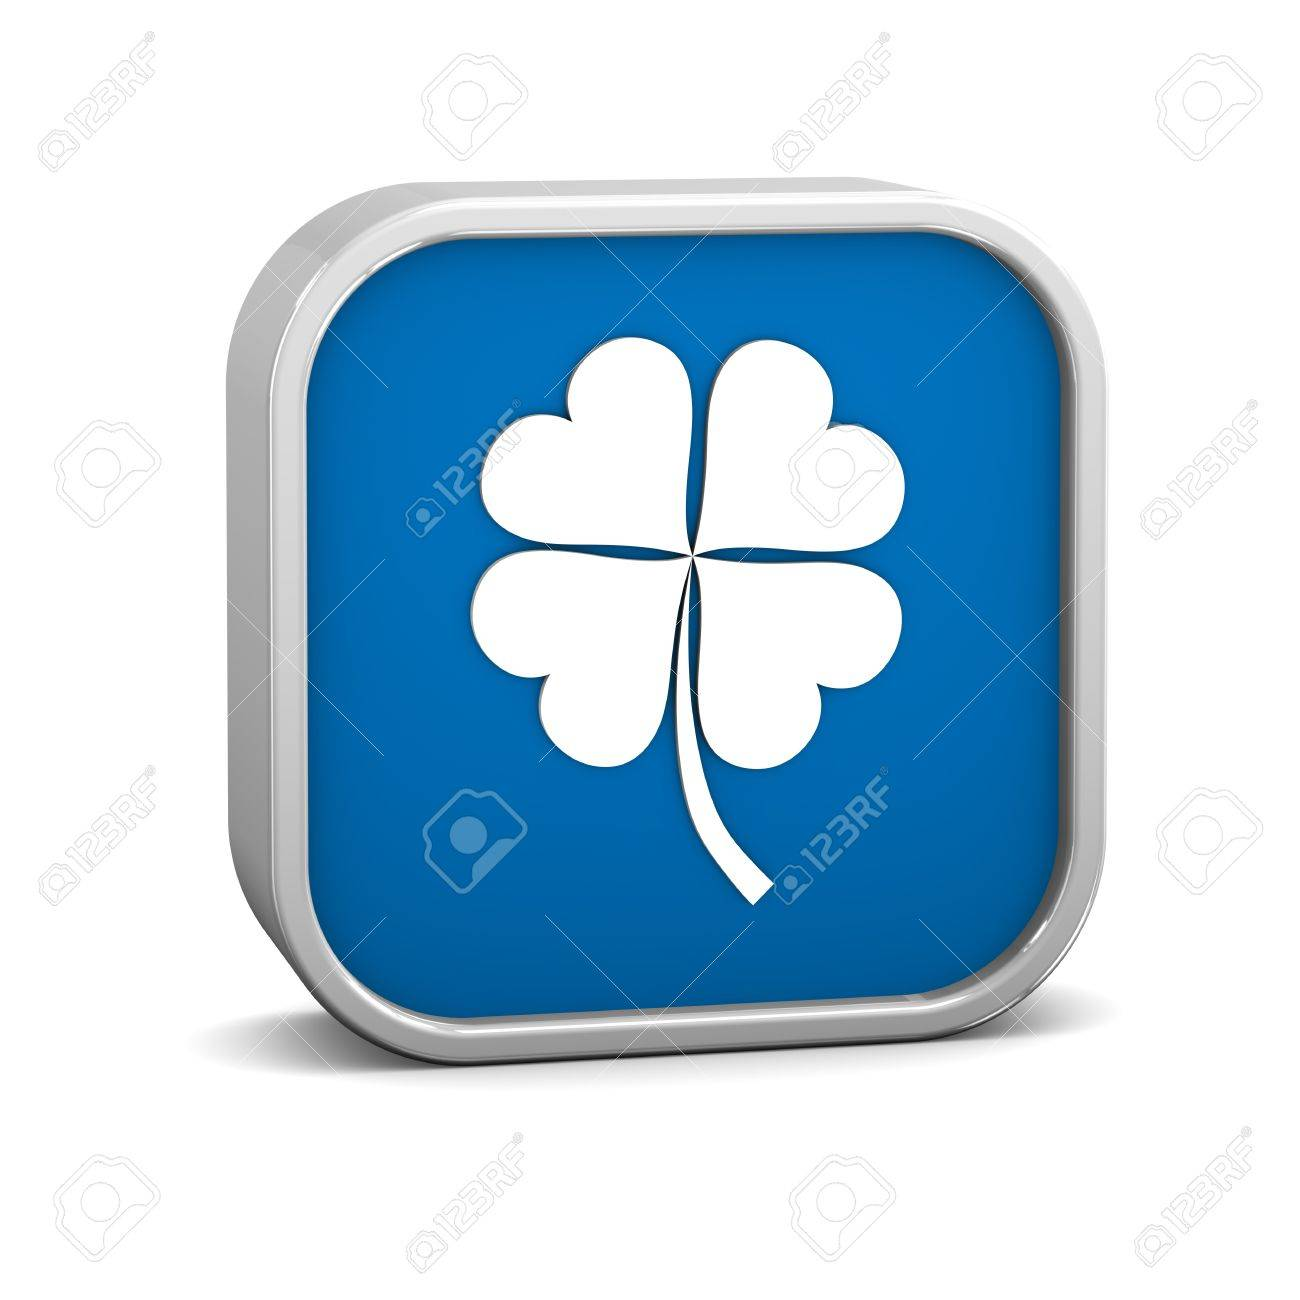 Four Leaf Clover Sign on a white background. Part of a series. Stock Photo - 12145778